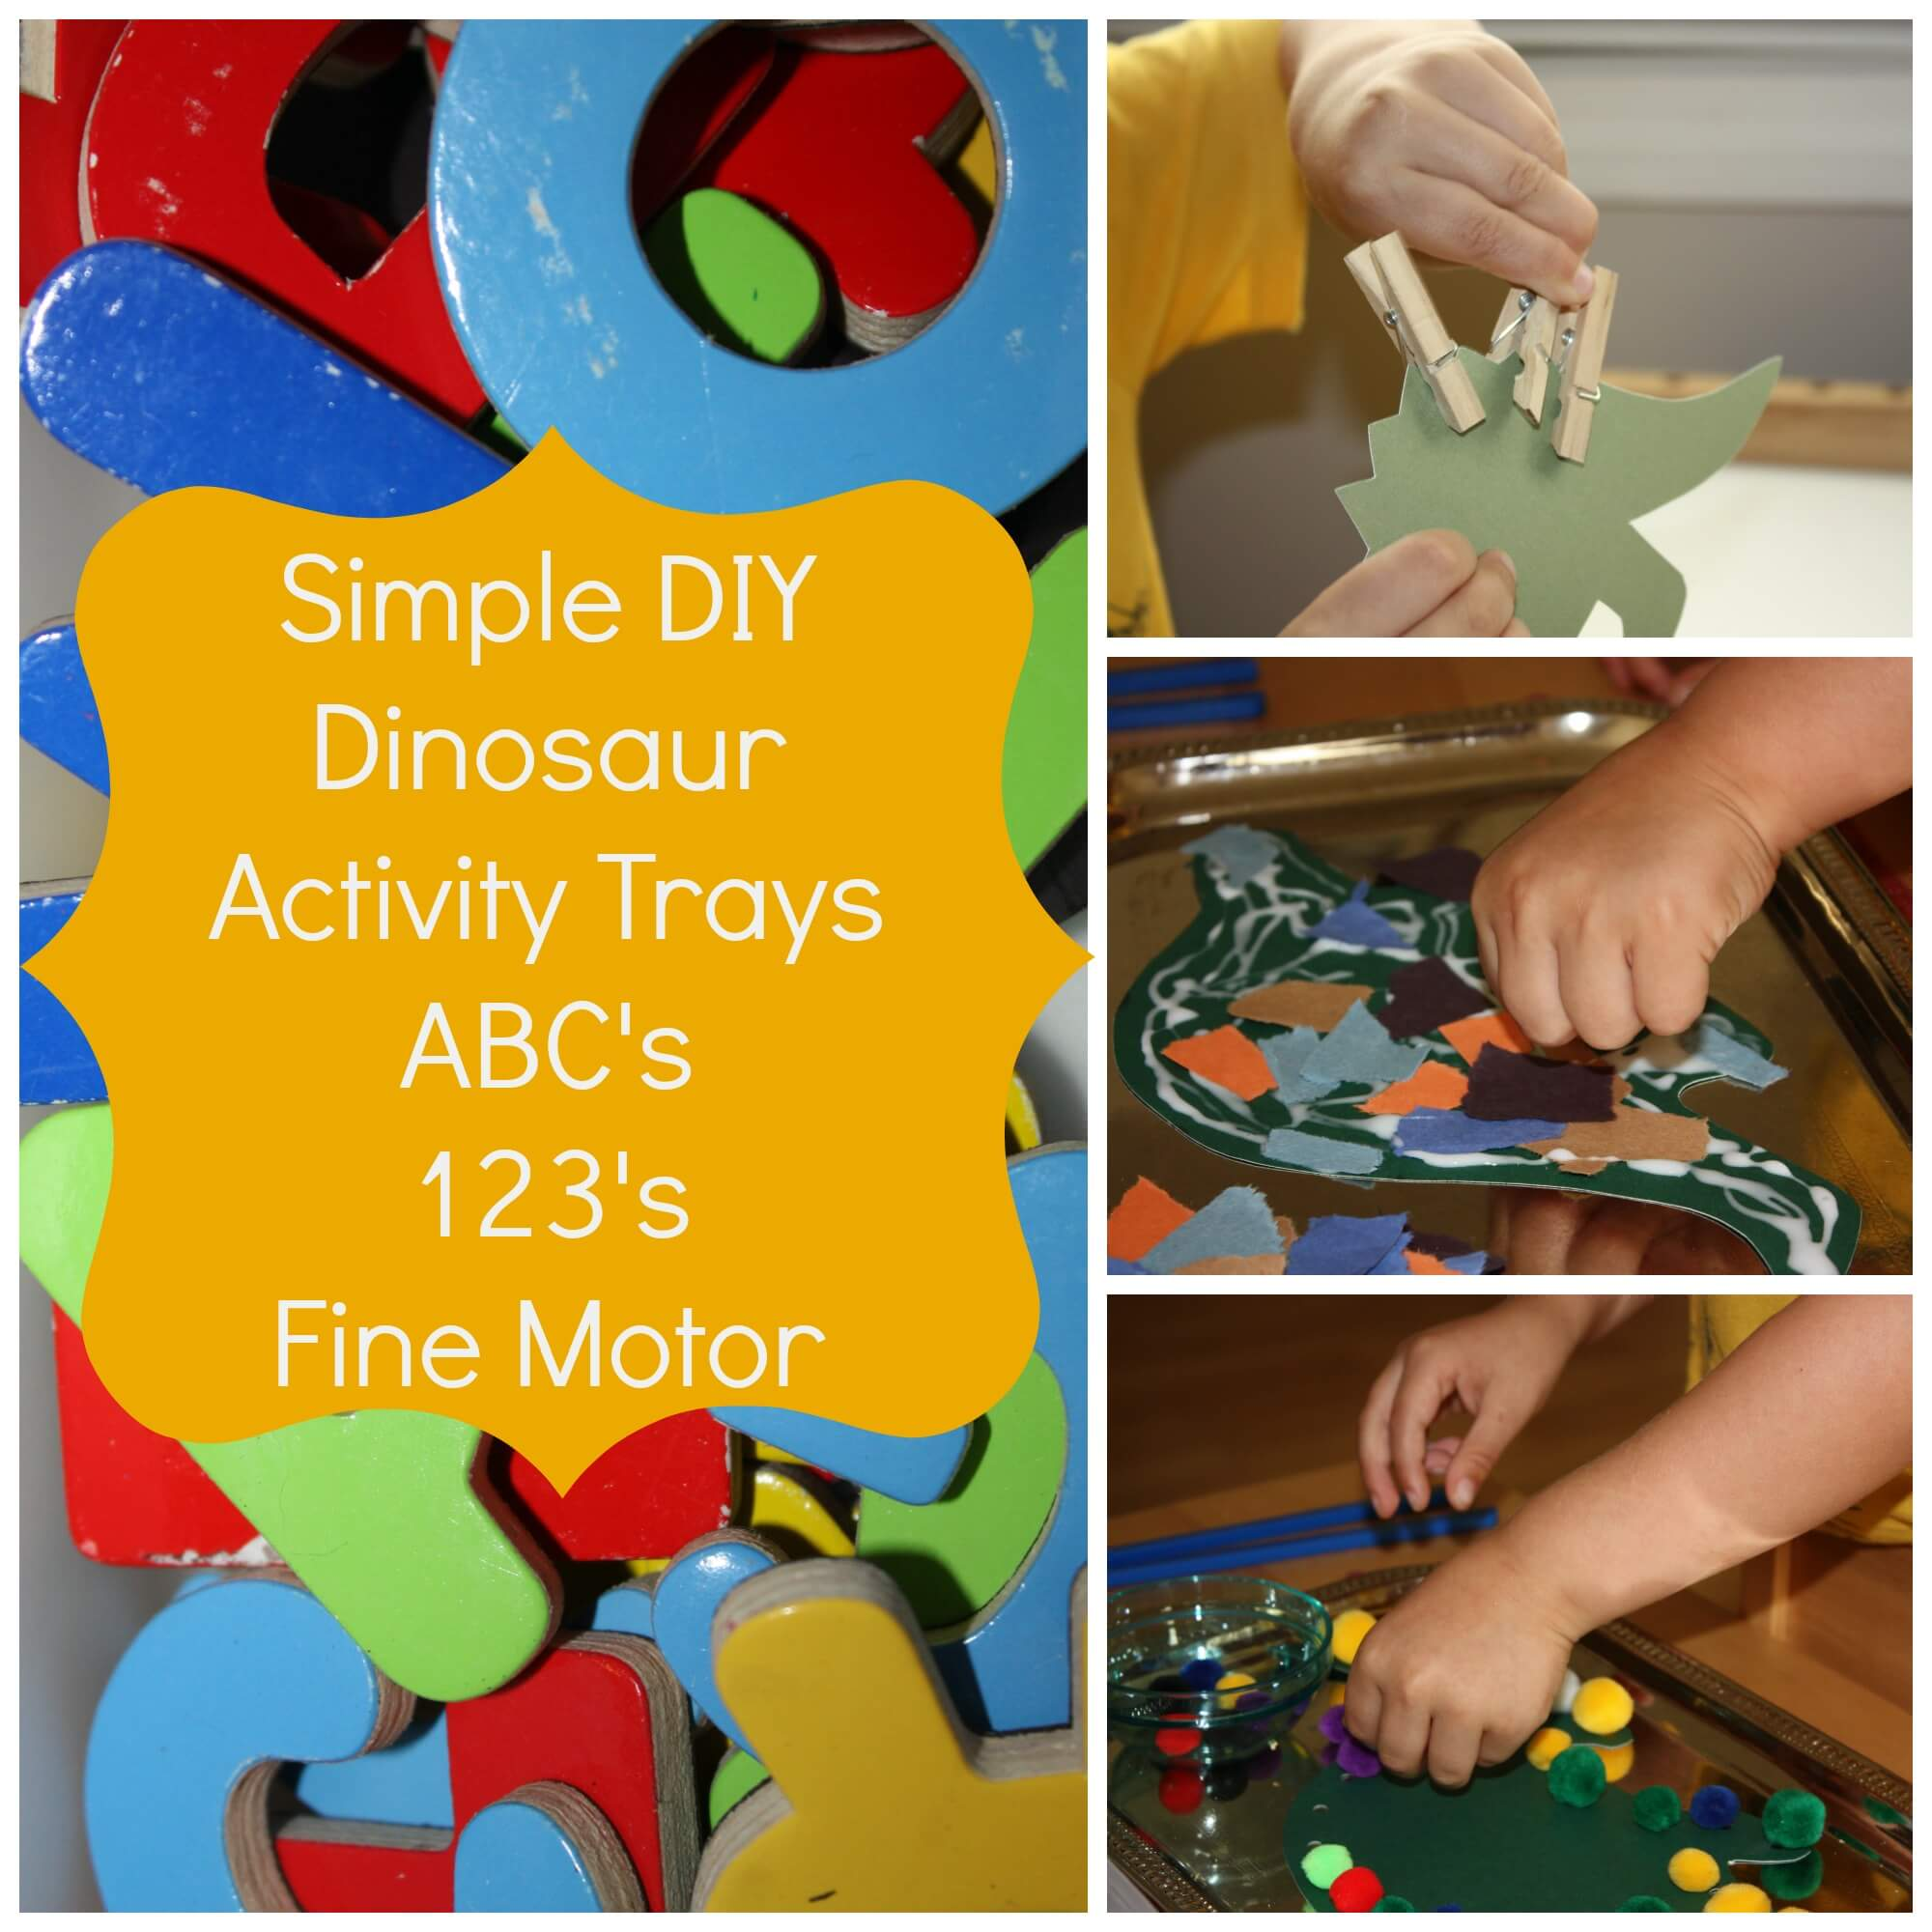 Dinosaur Activity Trays